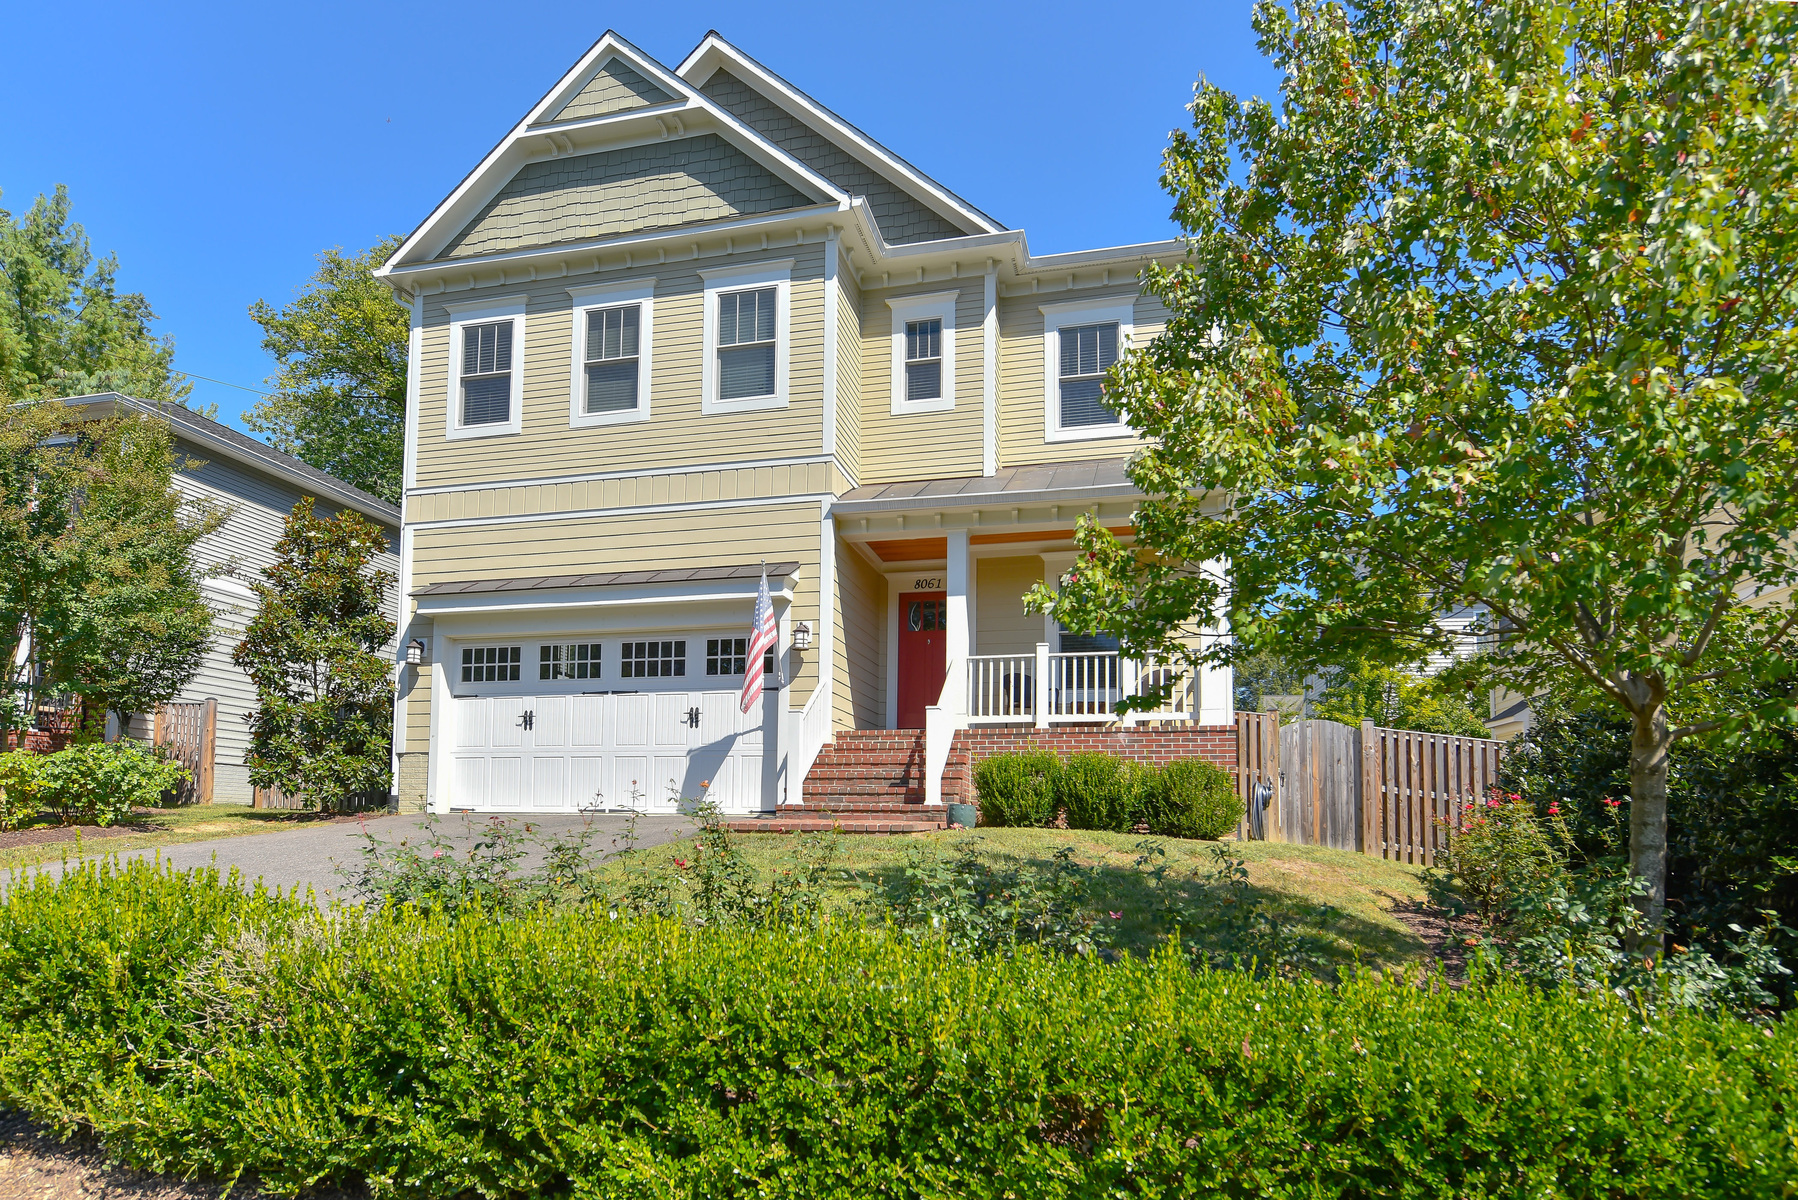 Single Family Home for Rent at Hollin Hall Village 8061 Fairfax Rd Alexandria, Virginia 22308 United States